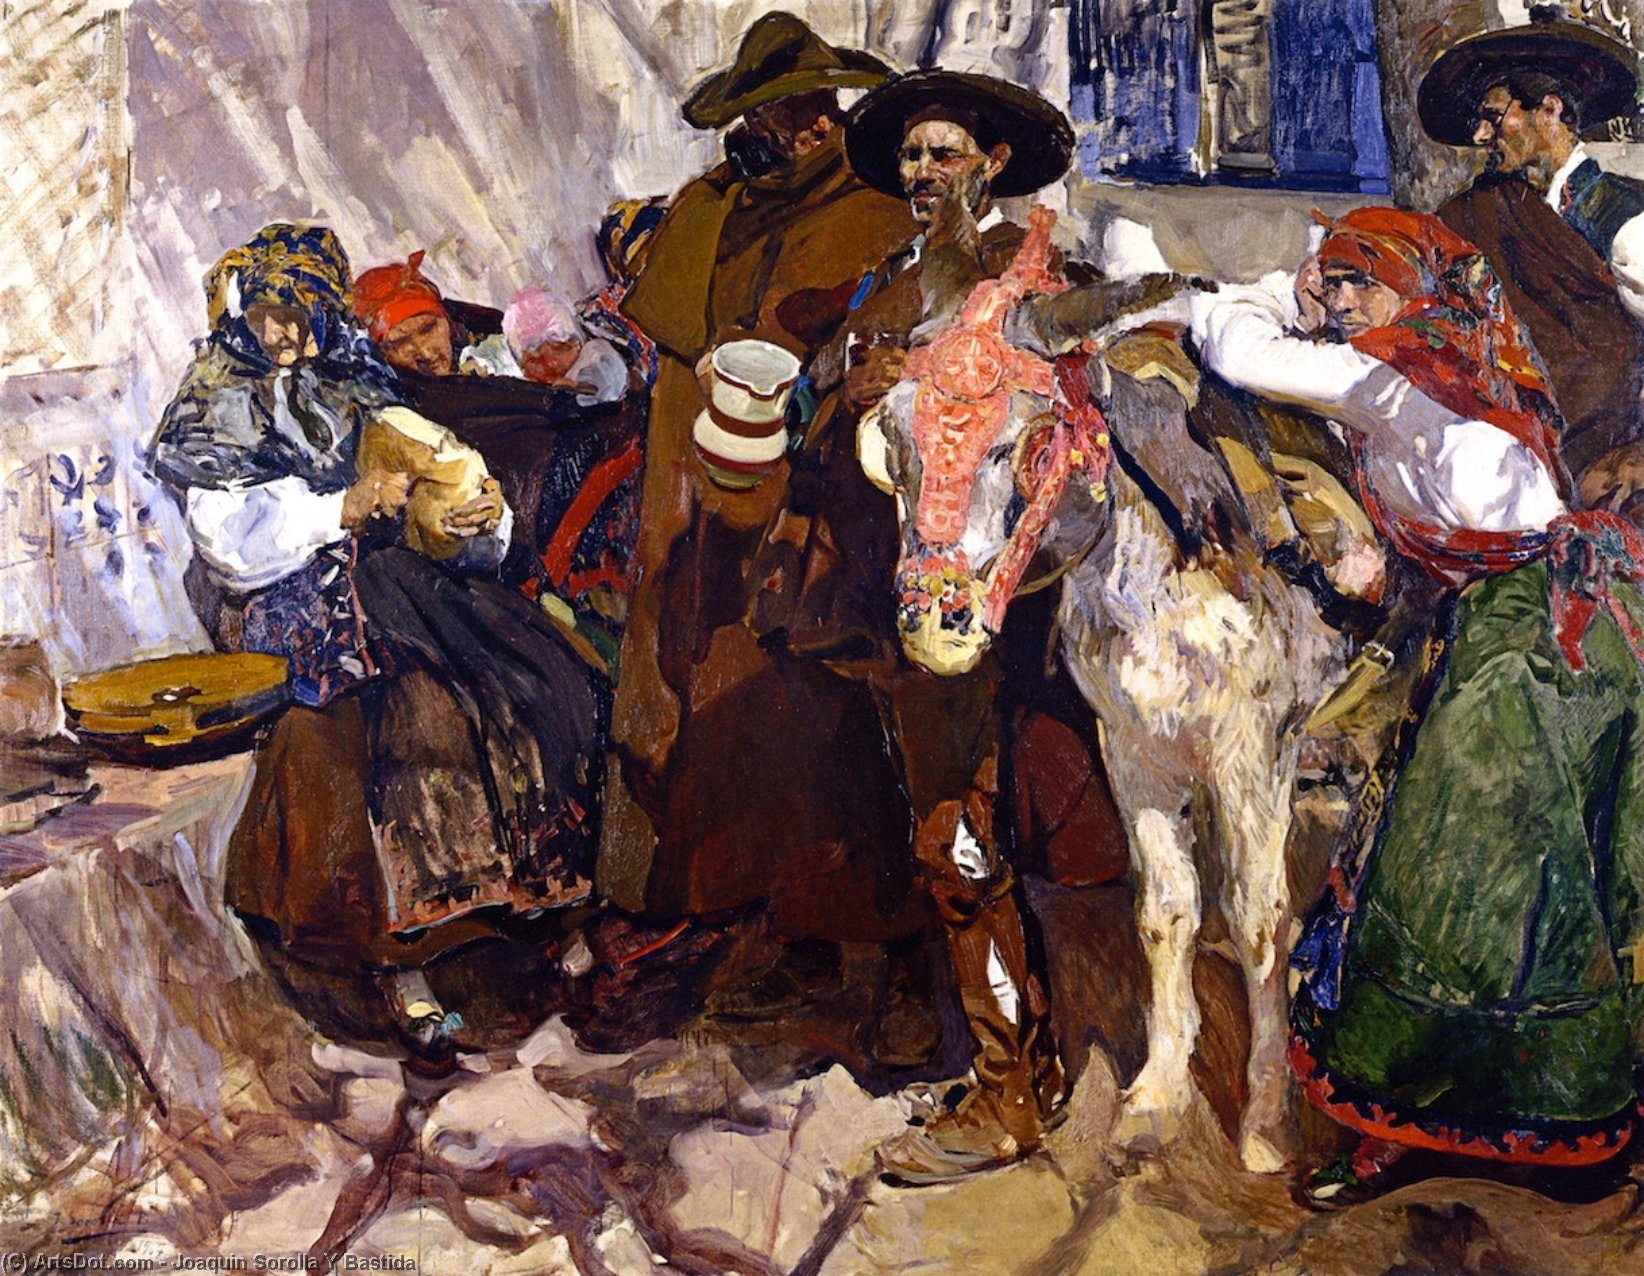 Villagers from Leon, Oil On Canvas by Joaquin Sorolla Y Bastida (1863-1923, Spain)